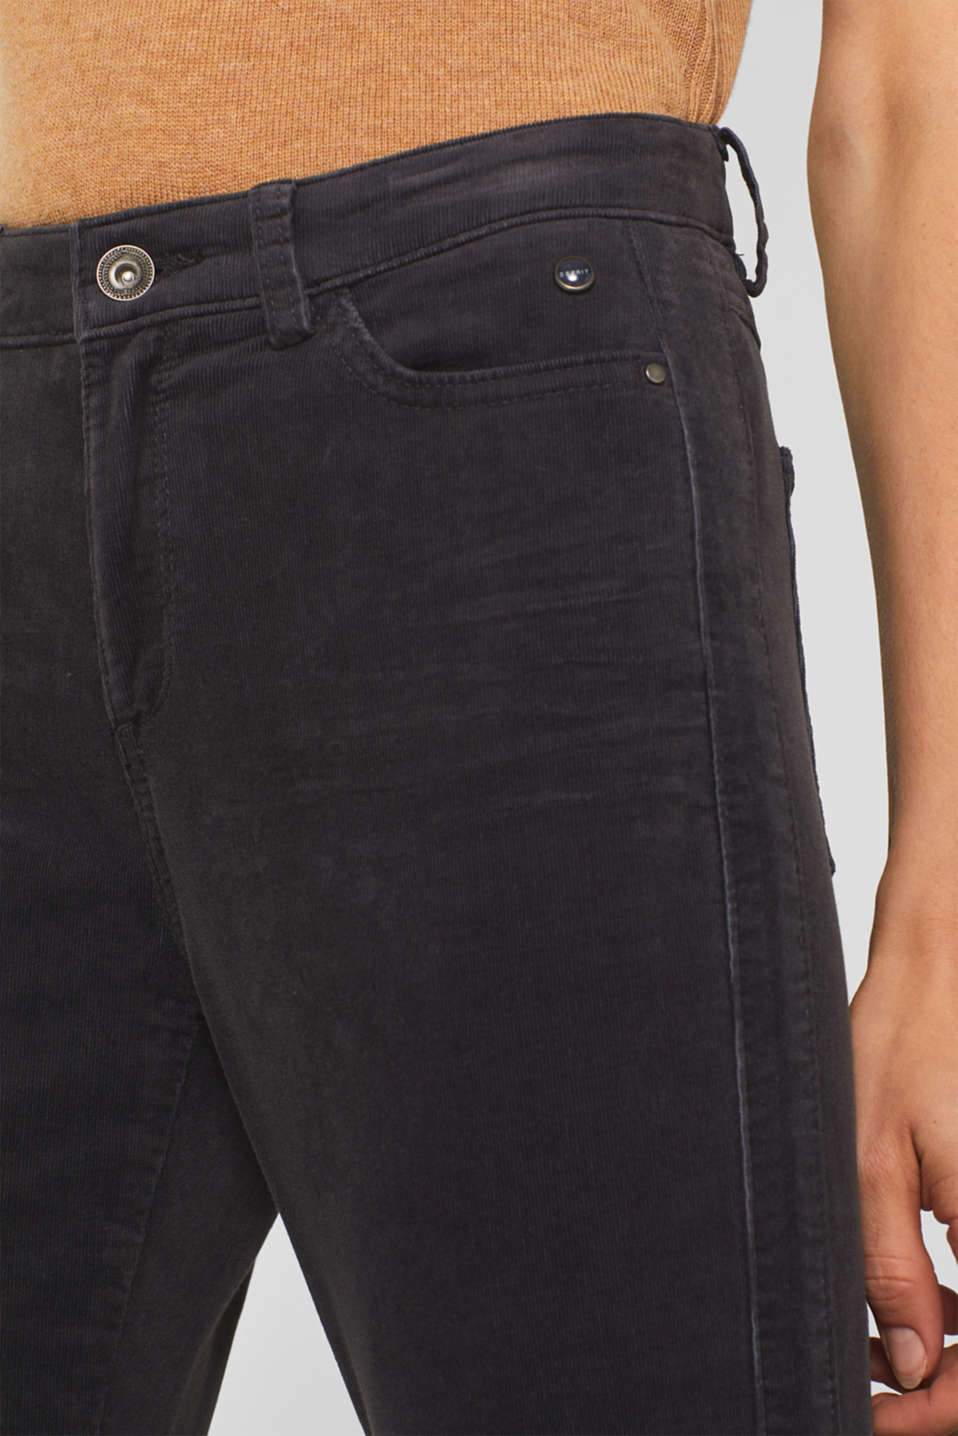 Pants woven, GREY, detail image number 2